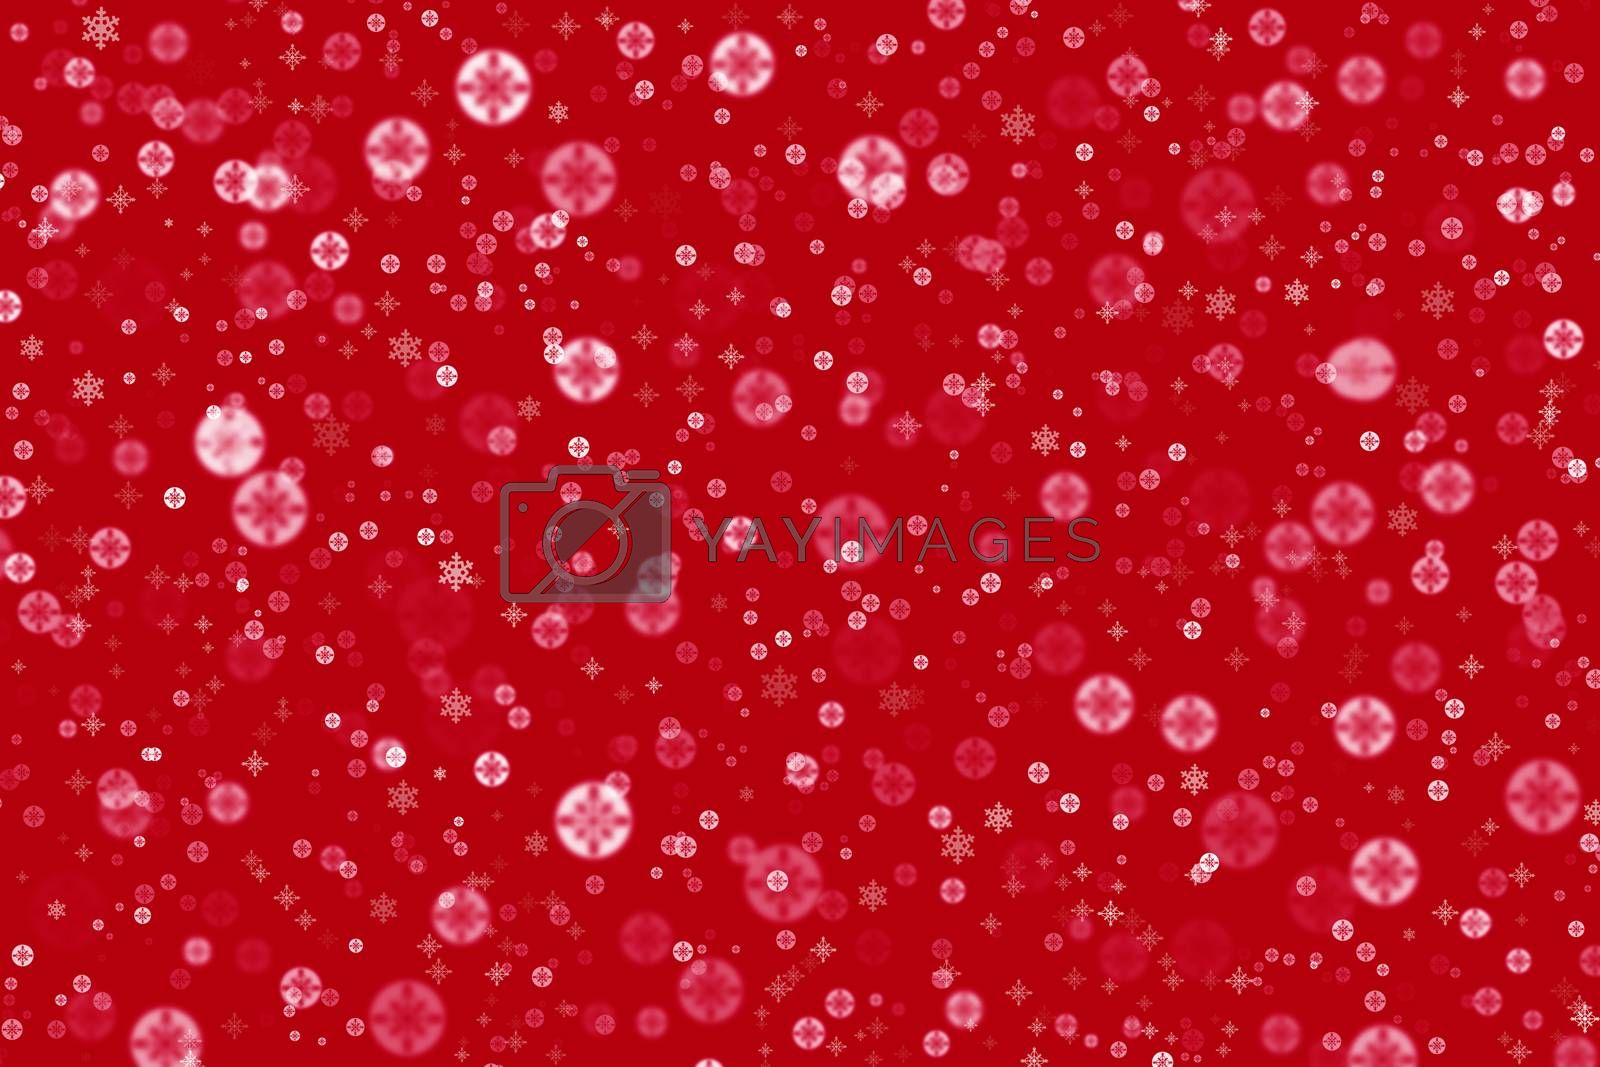 Christmas screensaver, background for Christmas and new Year greetings, red background